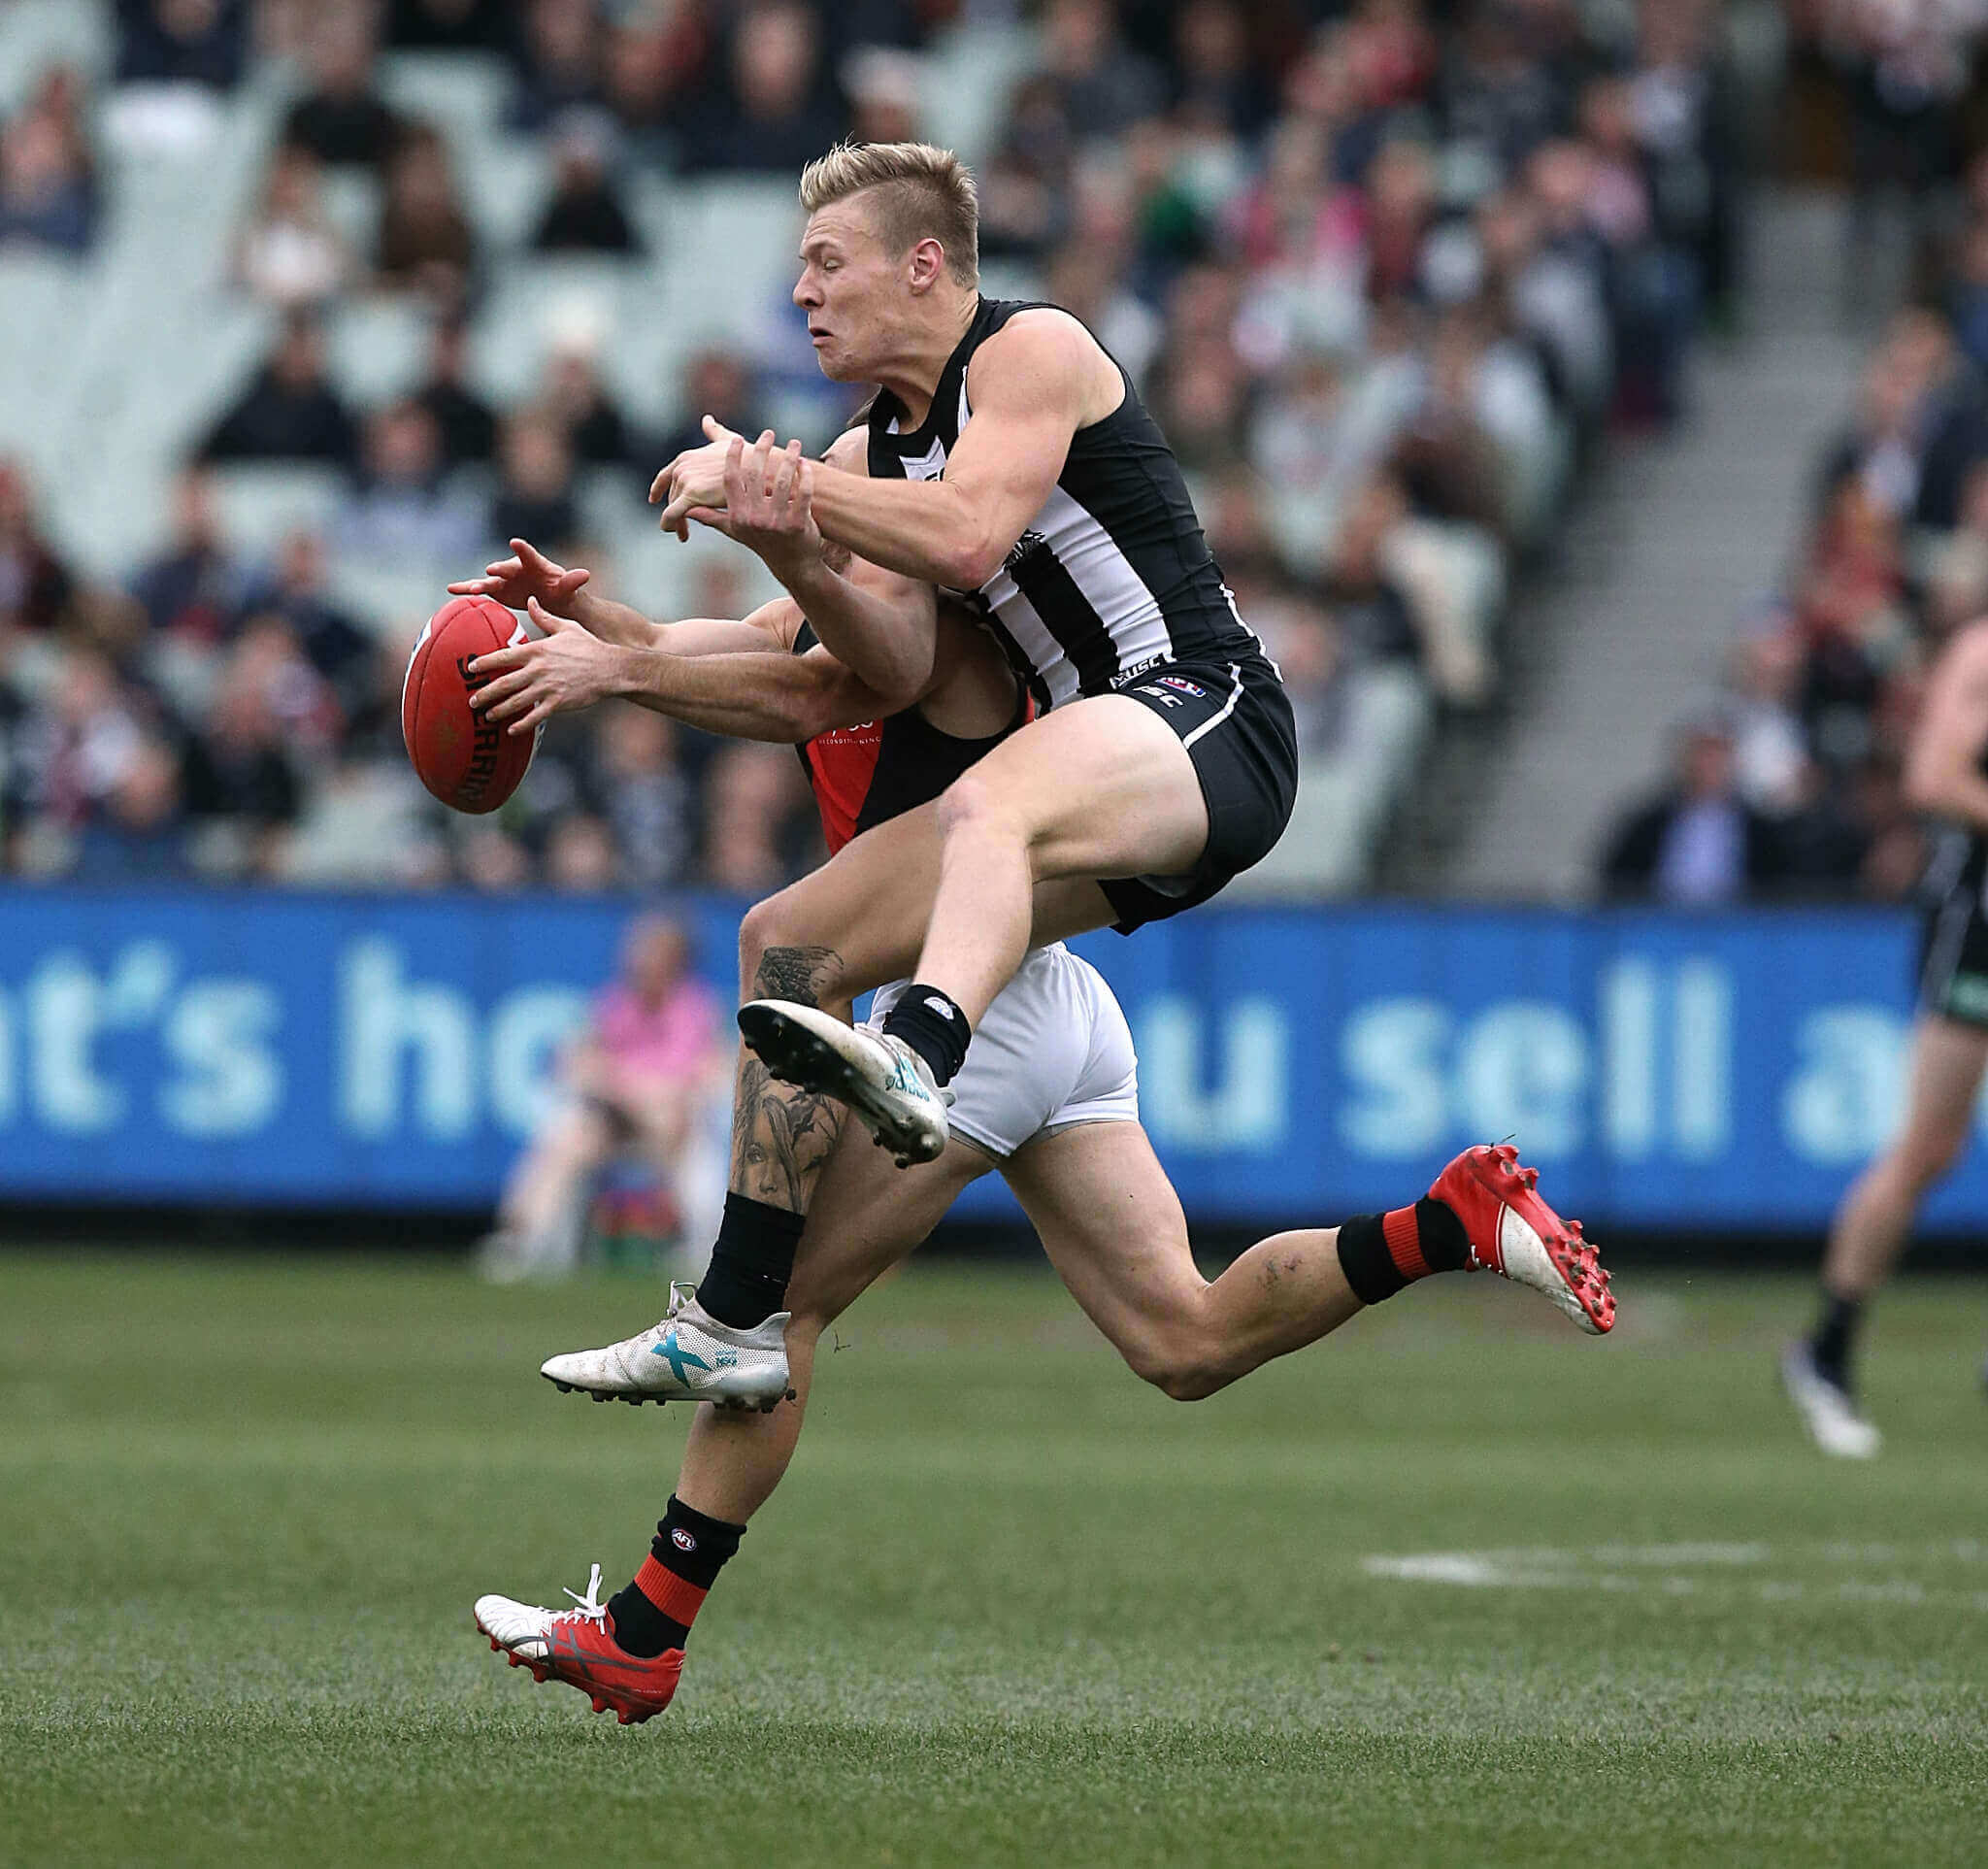 Collingwood v Essendon Rd16